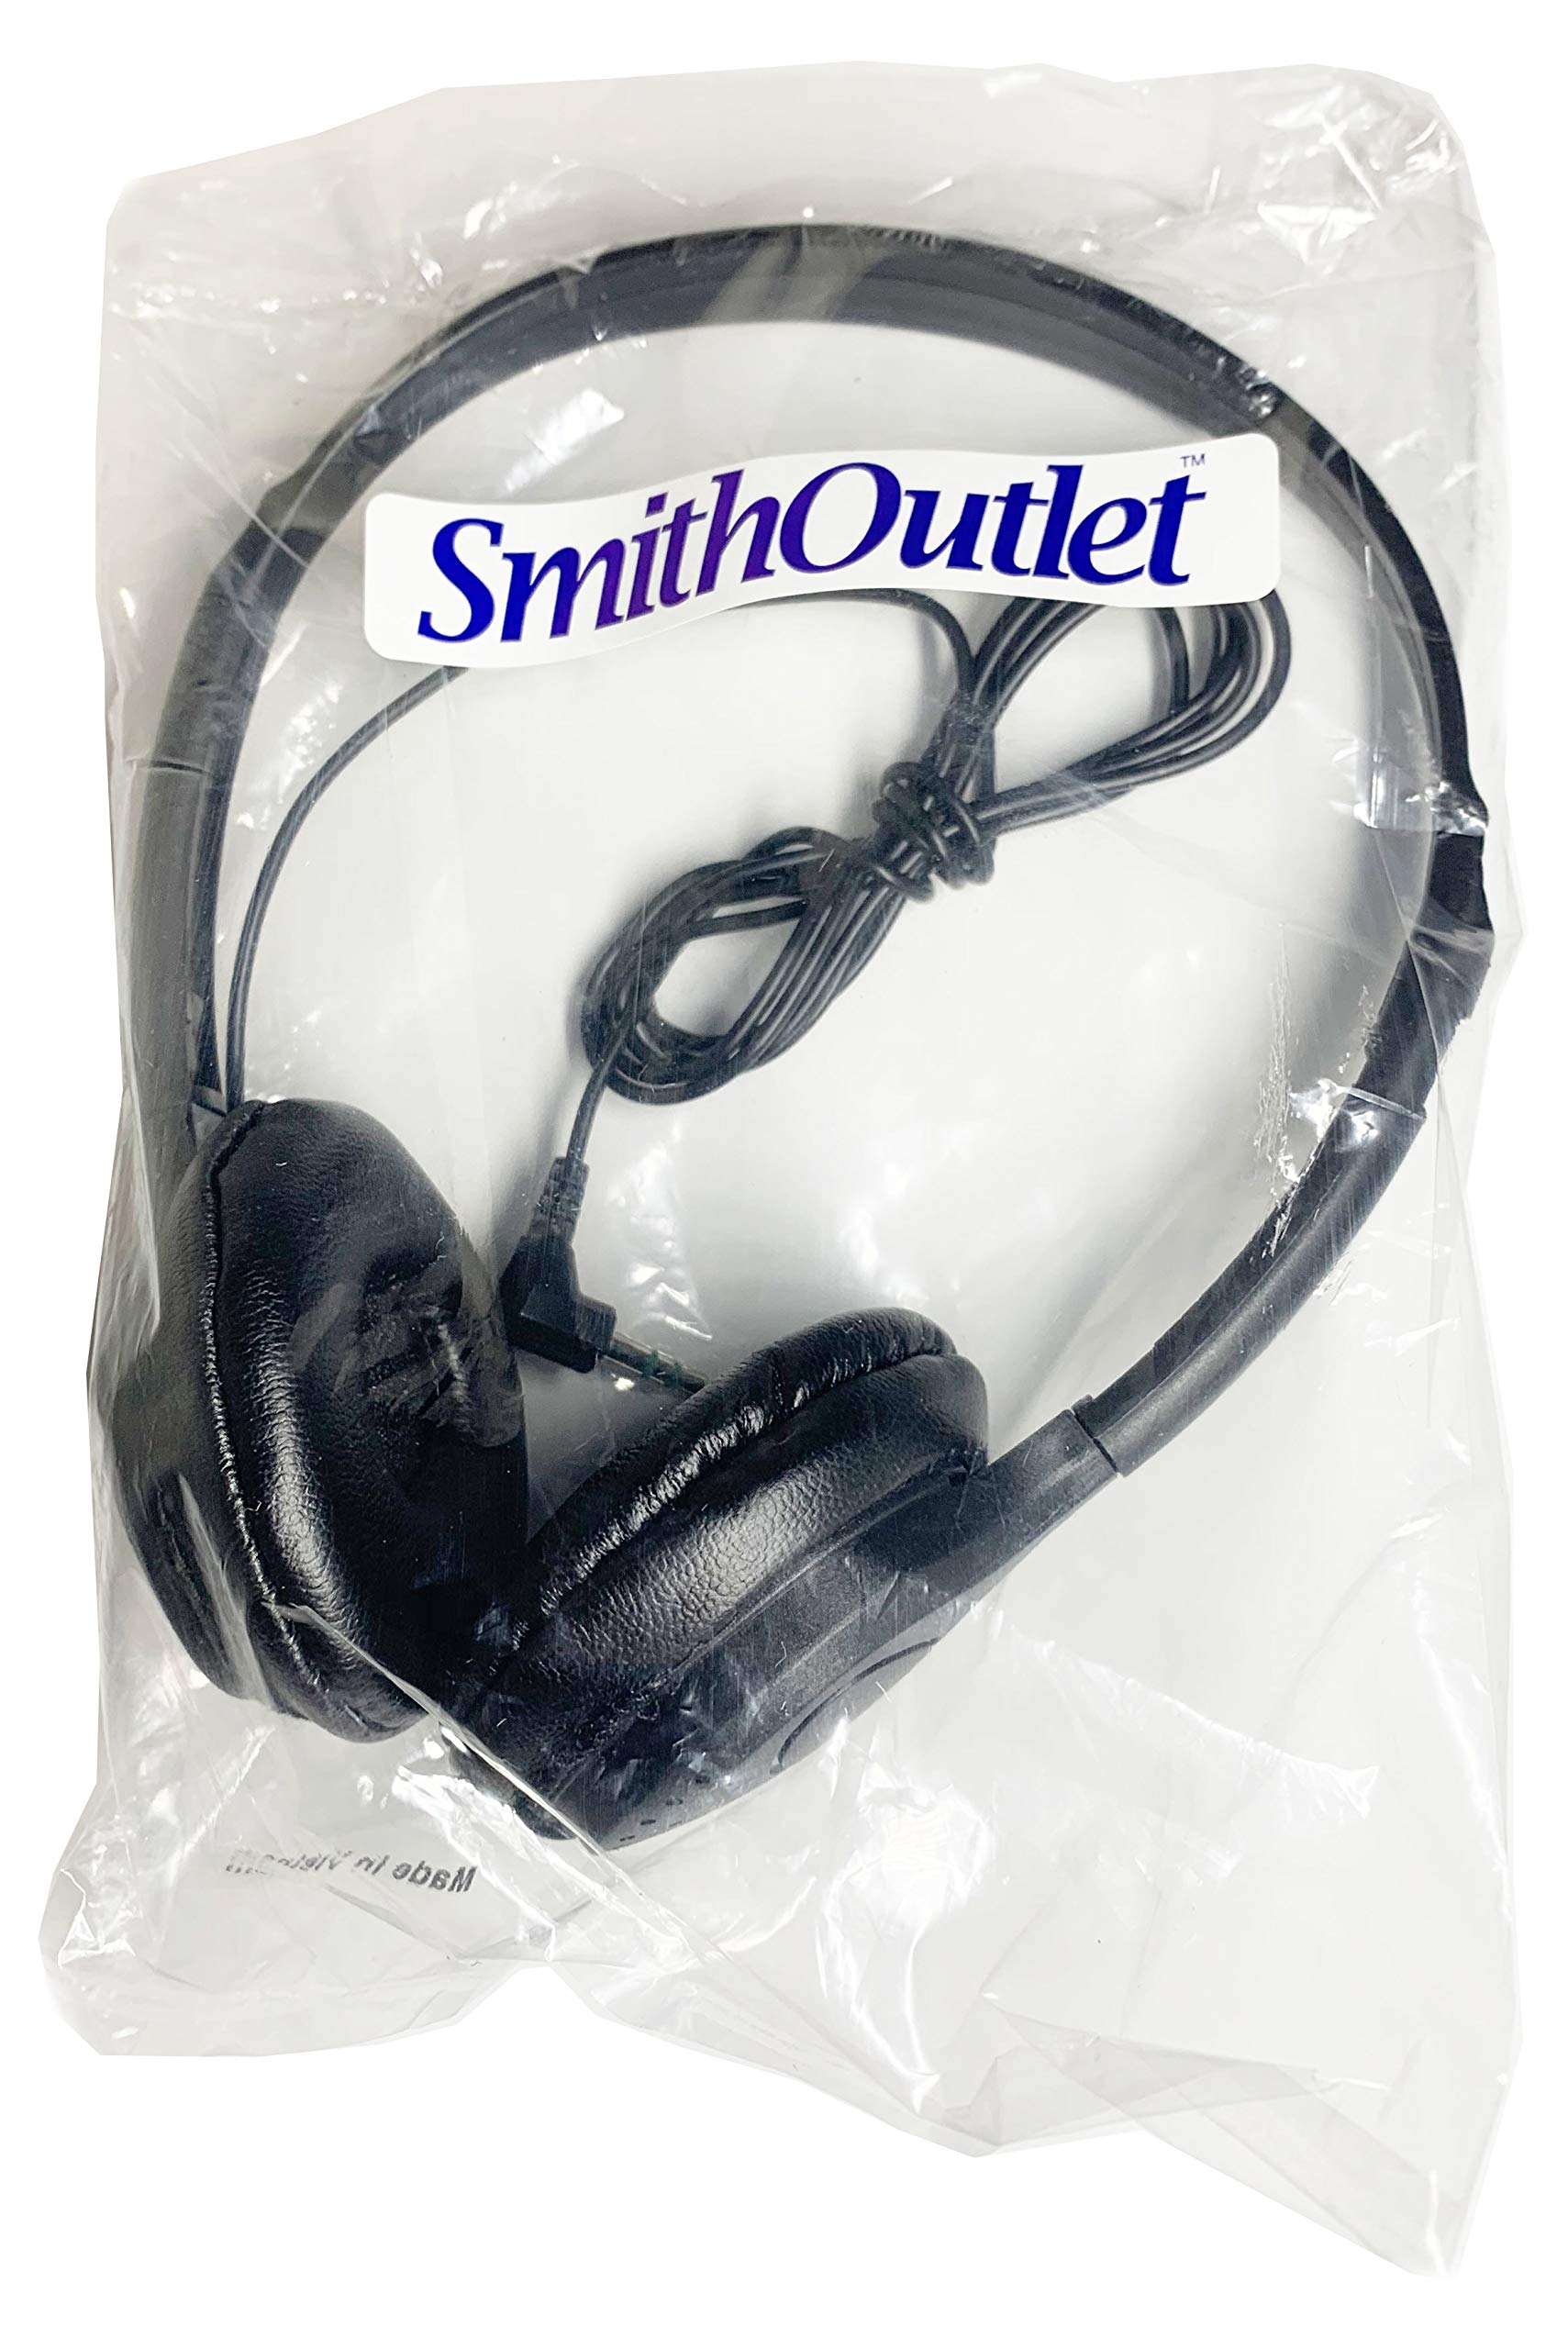 SmithOutlet 10 Pack Over The Head Low Cost Headphones by SmithOutlet